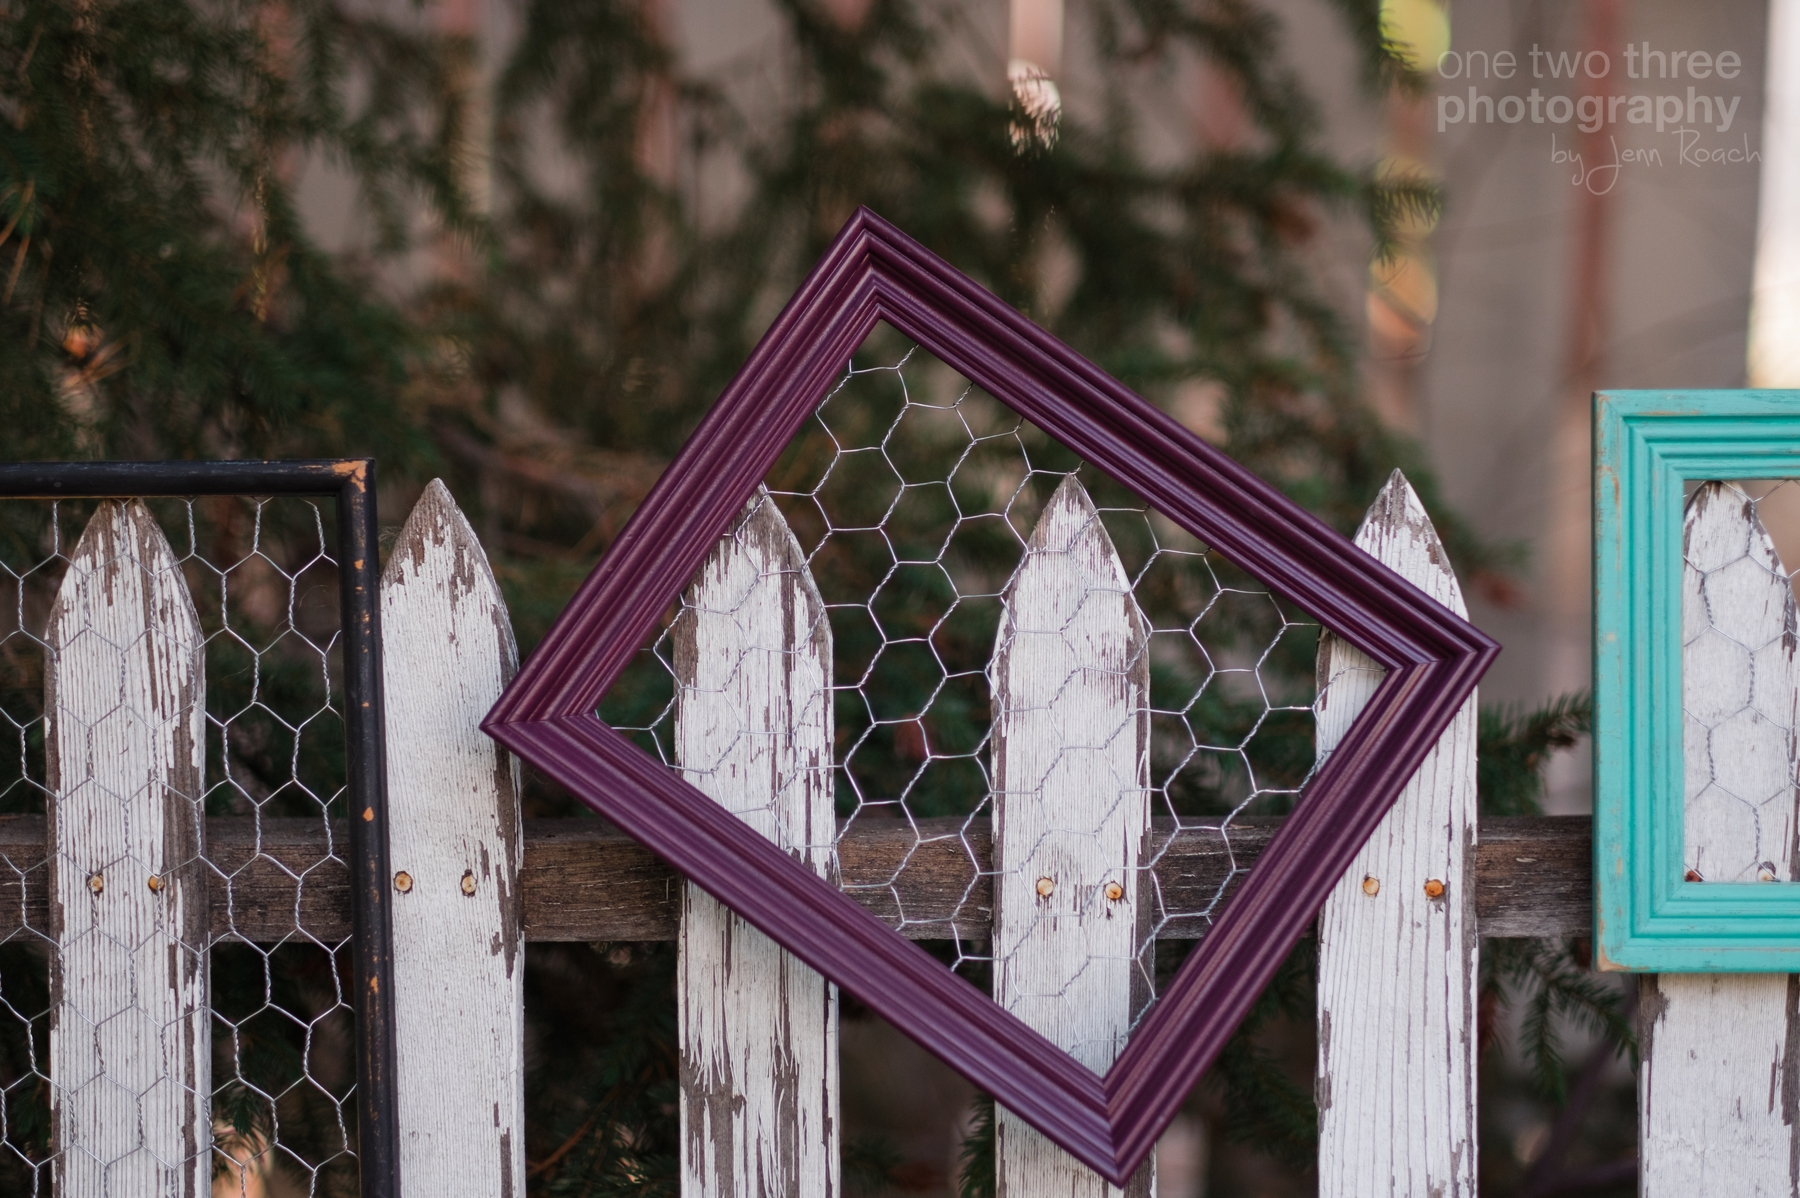 More details of frames with wire used for hanging photos or recipes